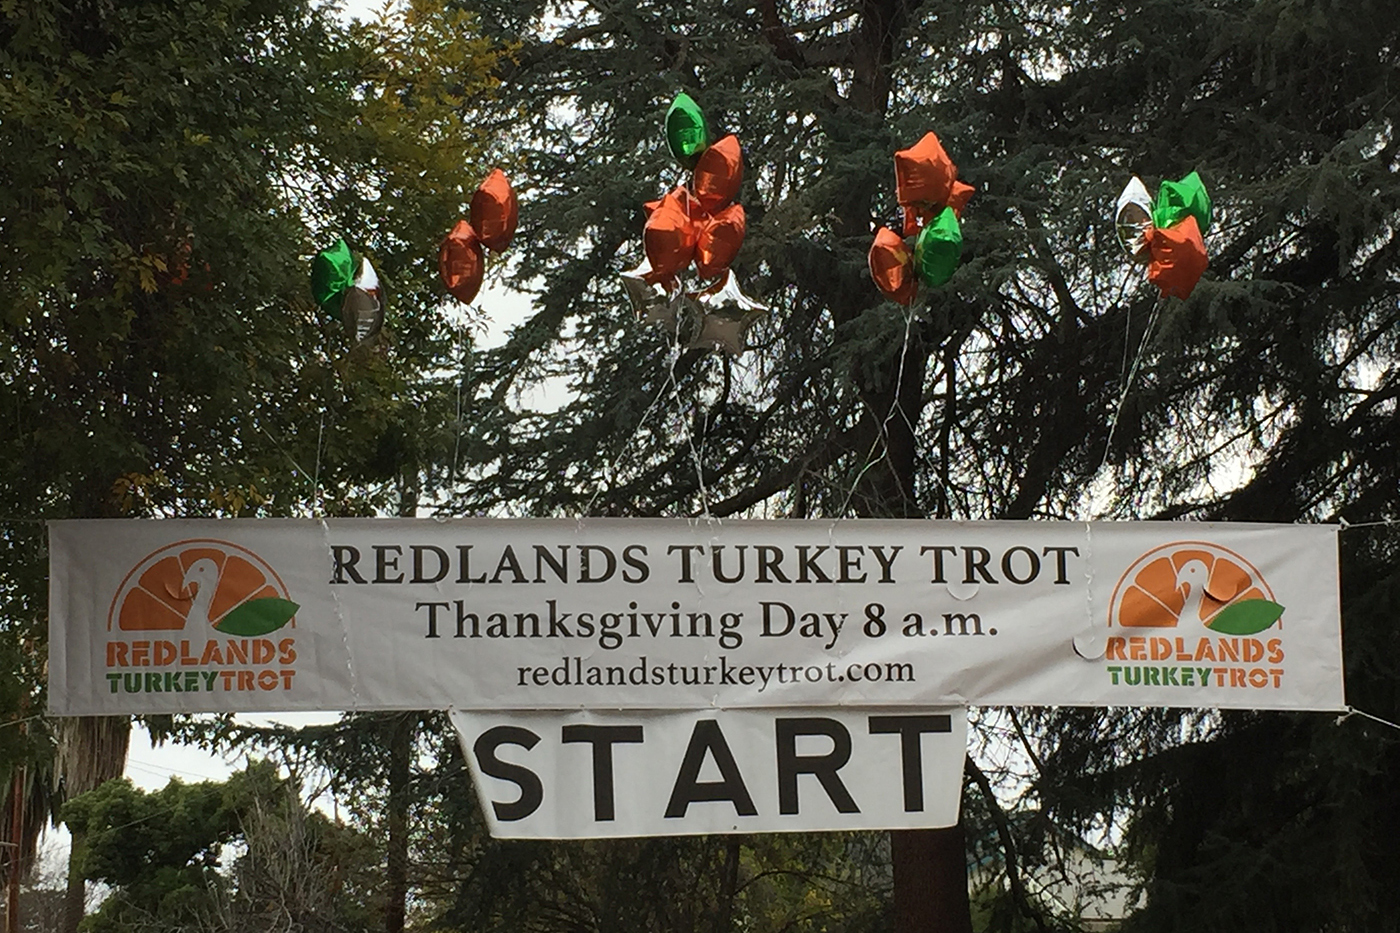 Redlands Turkey Trot 5K & 1K Fun Run